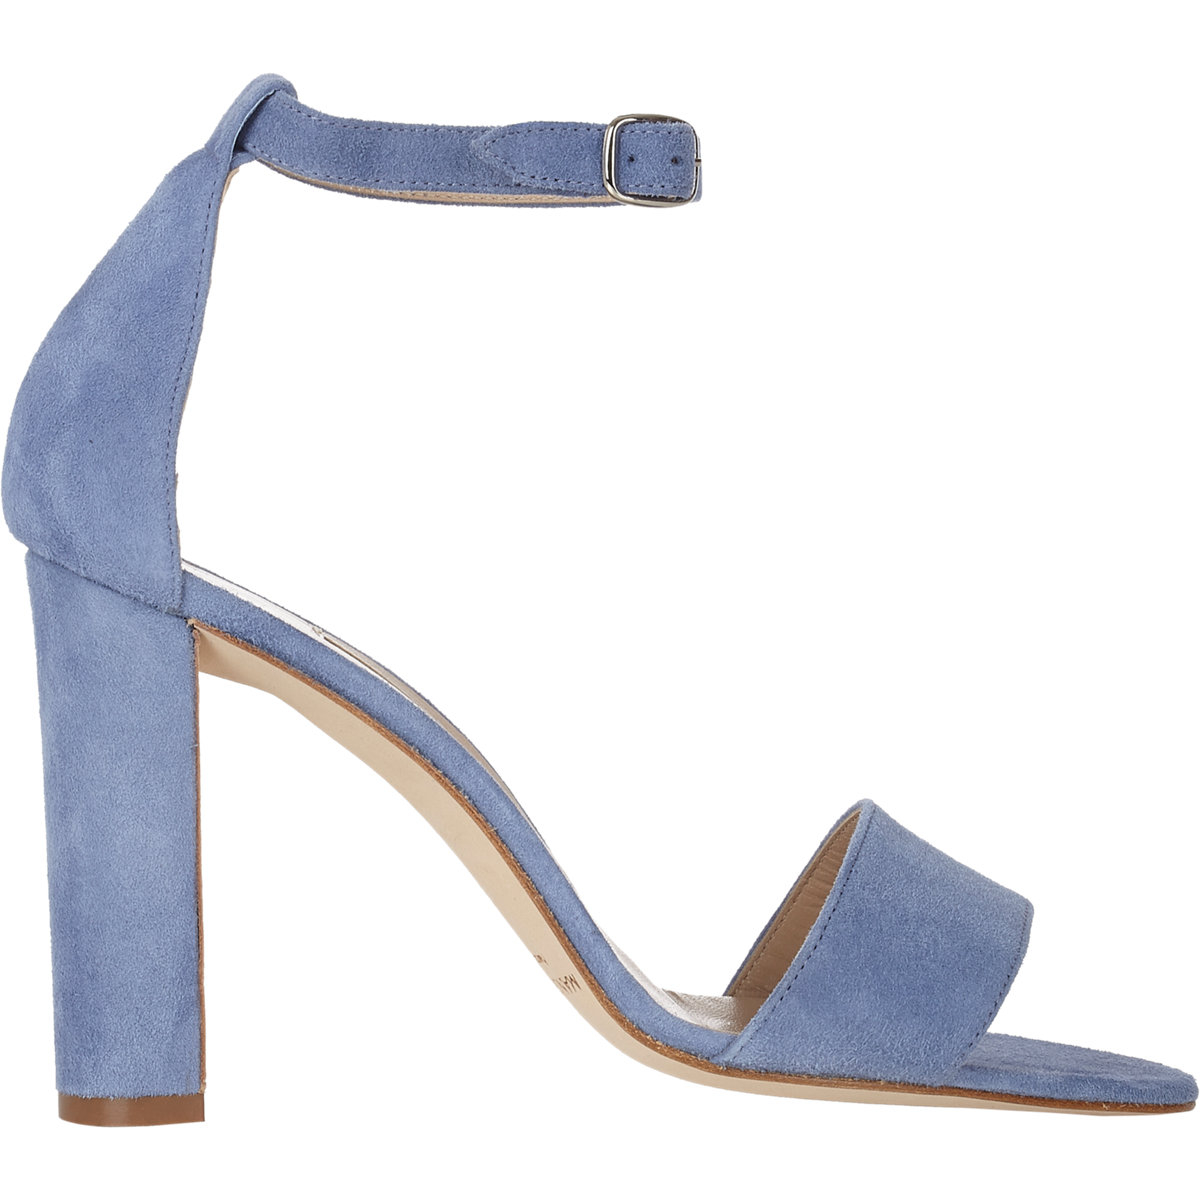 Manolo Blahnik Suede Ankle Cuff Sandals buy cheap original supply online top quality cheap online from china cheap online clearance reliable ym5A0vT